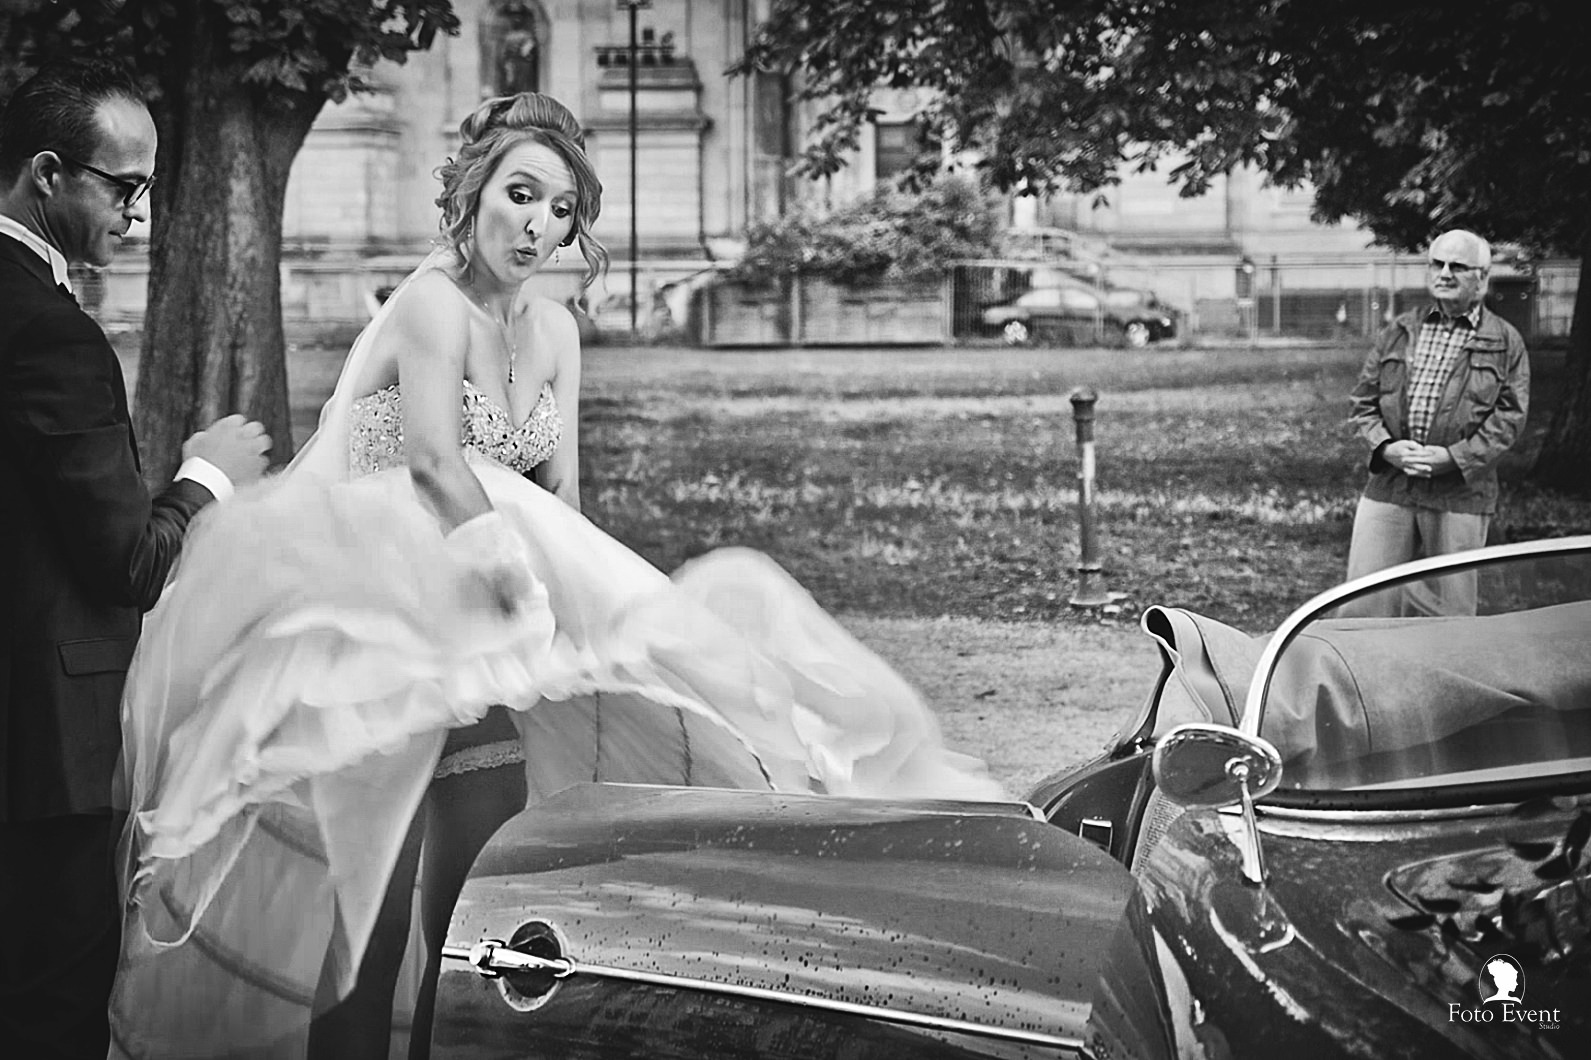 Natalija e Giuseppe – Destination Wedding in Berlin, Germany